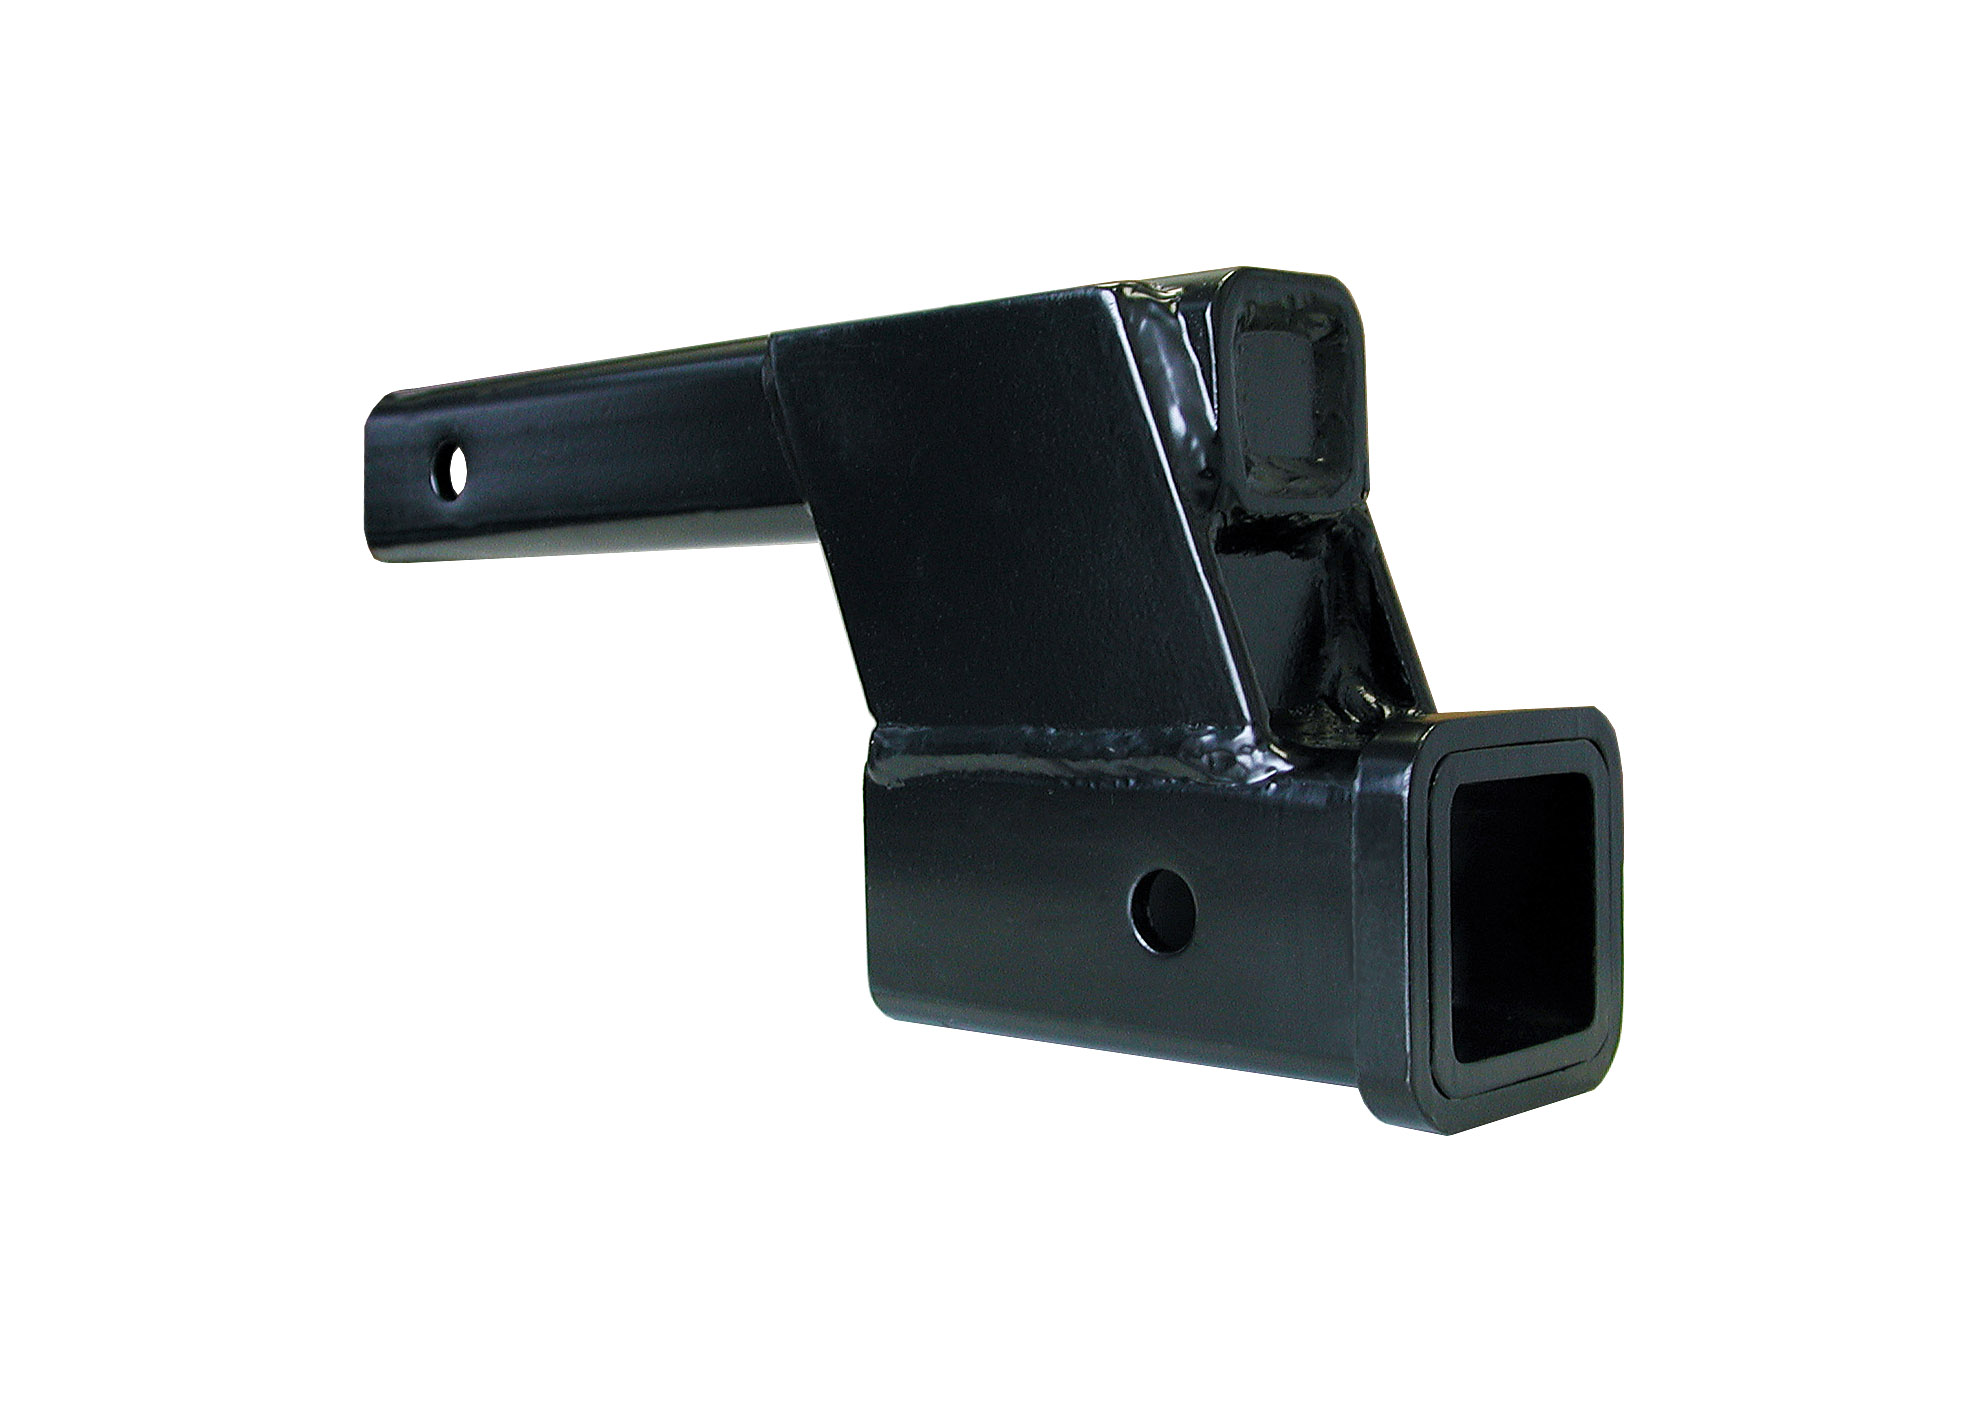 070 Roadmaster Trailer Hitch Receiver Tube Adapter Fits 2 Inch